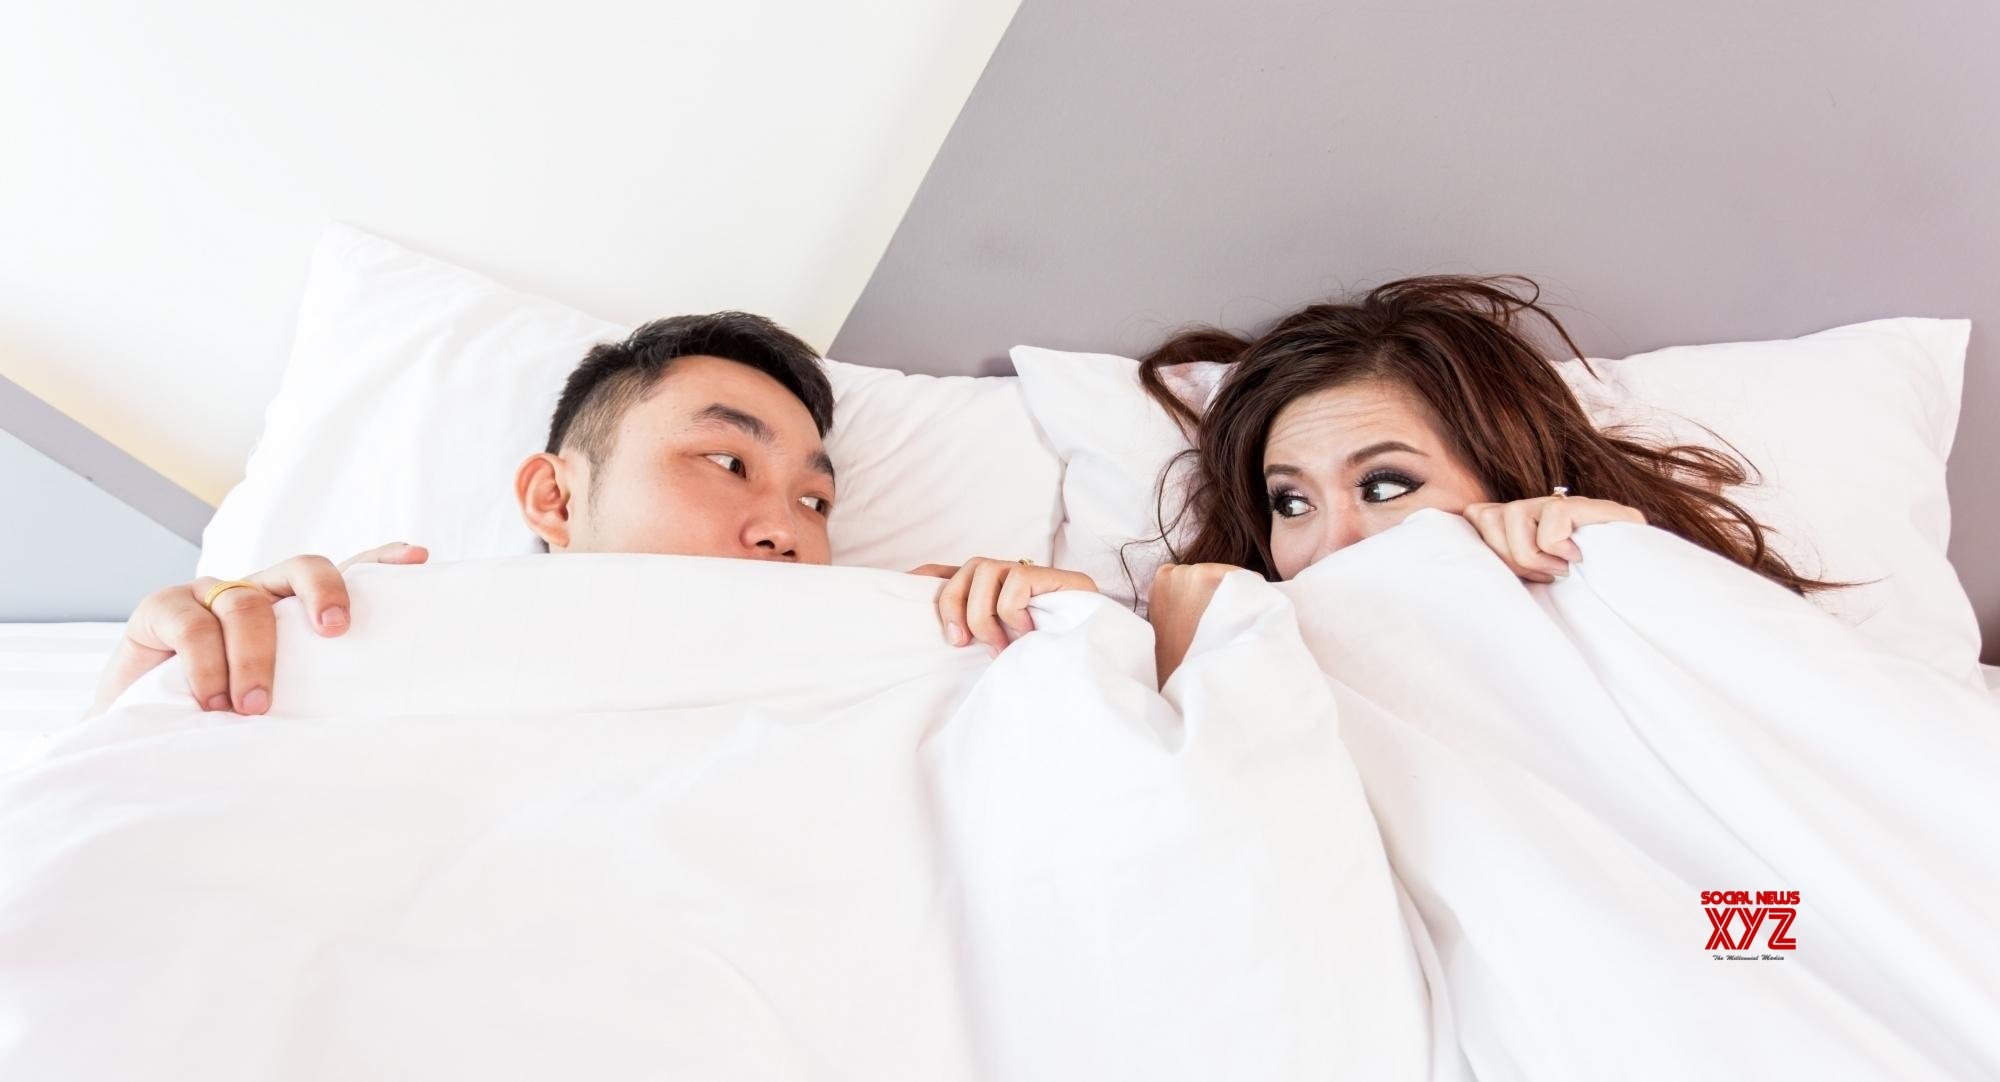 Men act less interested in sex than they really are